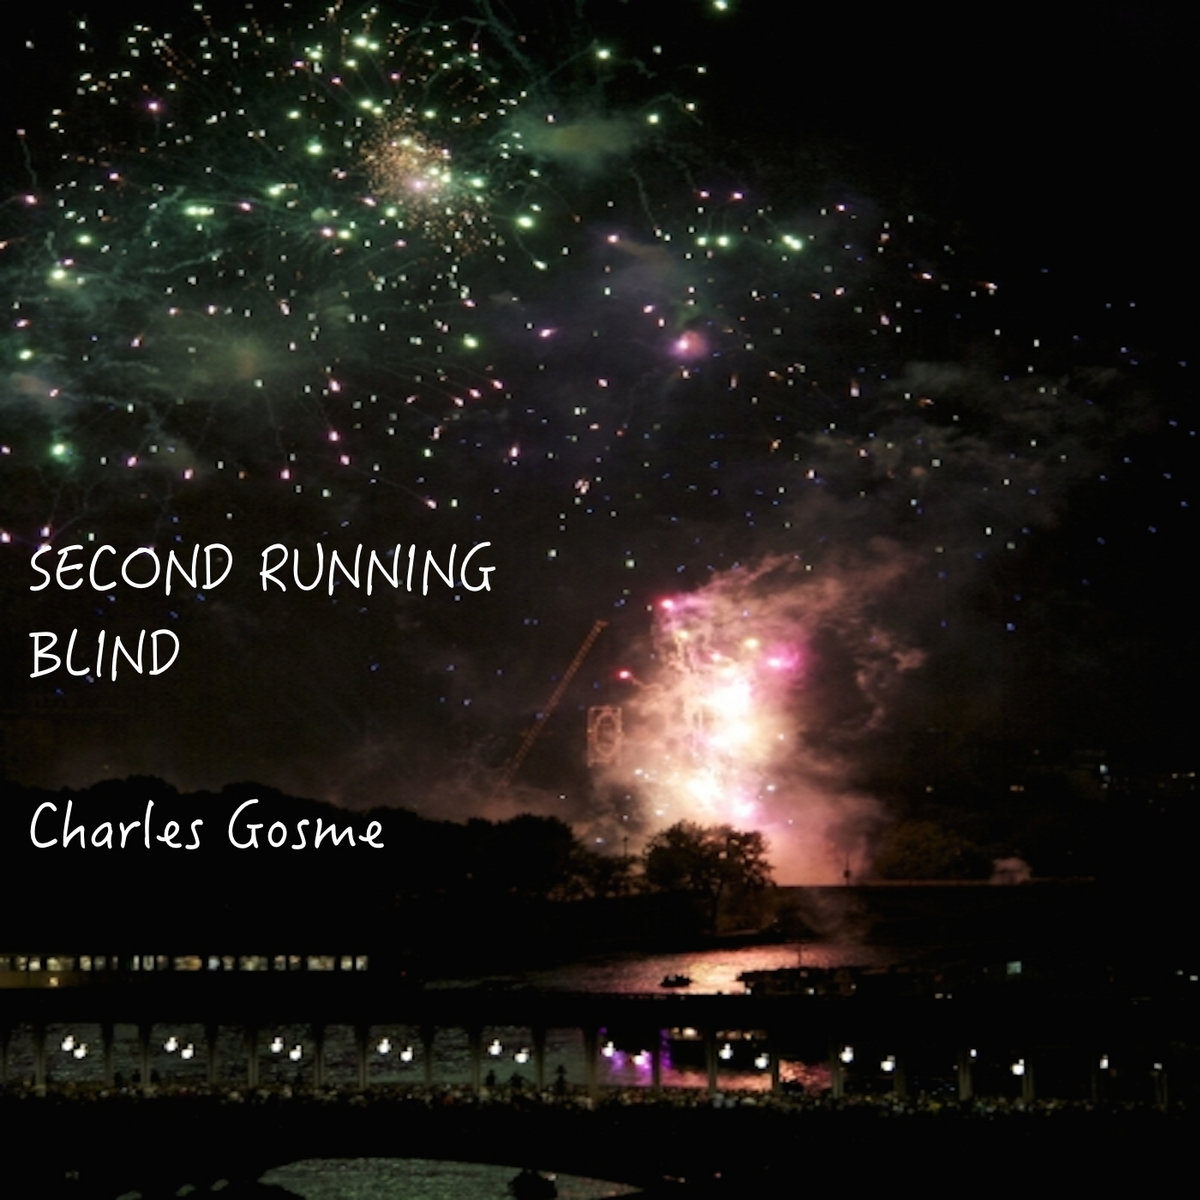 Second Running Blind by Charles Gosme